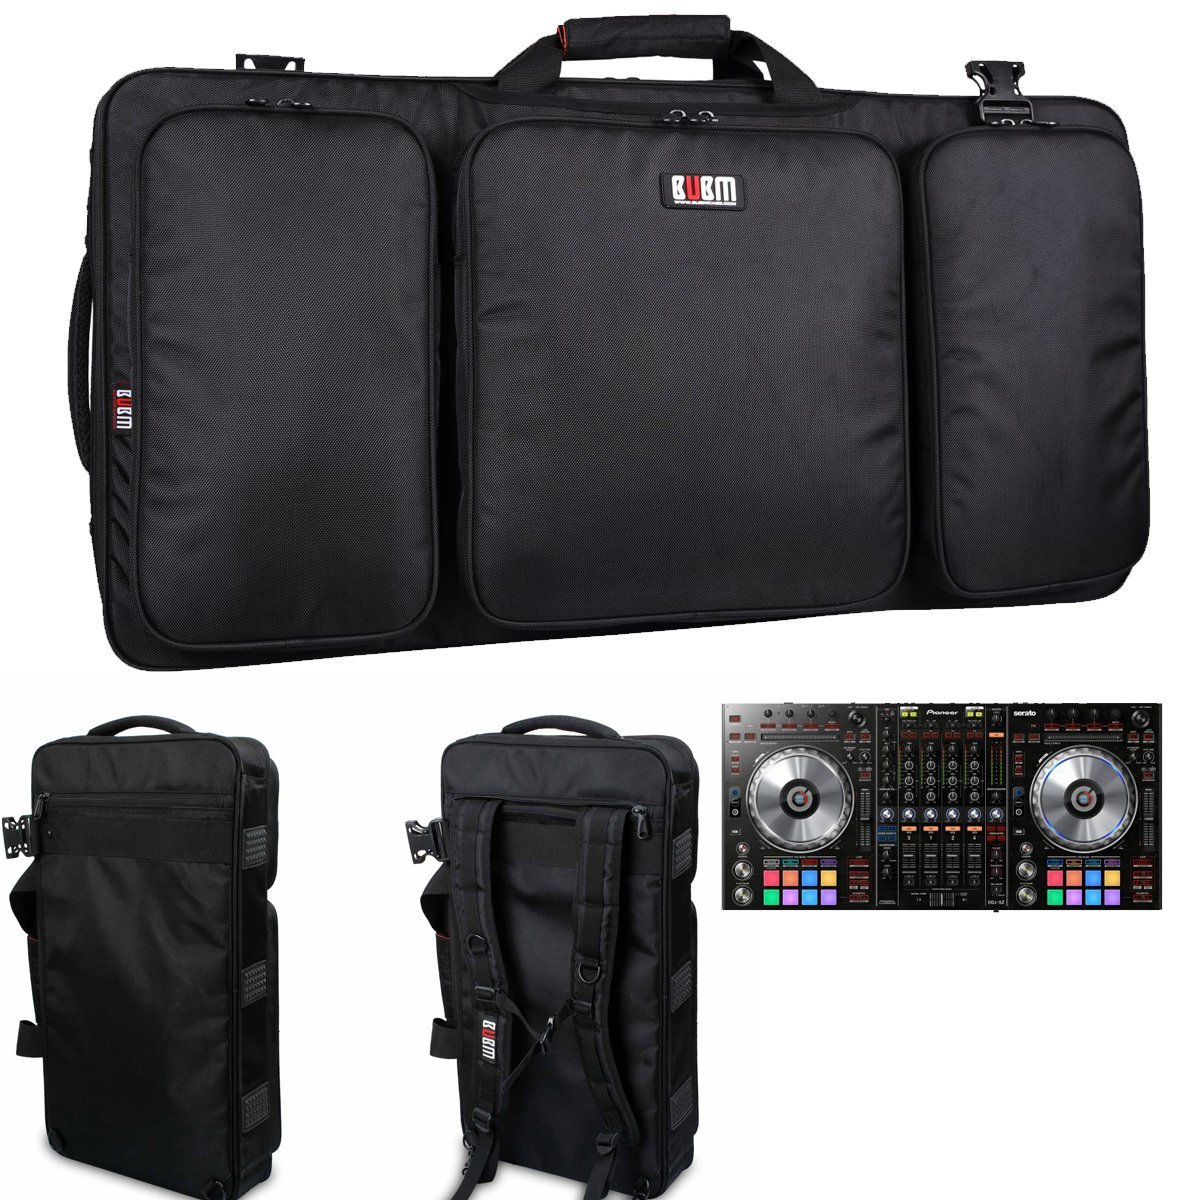 BUBM Shockproof Carrying Camera Case for Gopro Hero Professional Protector Bag Travel Packsack For Pioneer Pro DDJ SZ DJ bubm  professional dj bag for pioneer